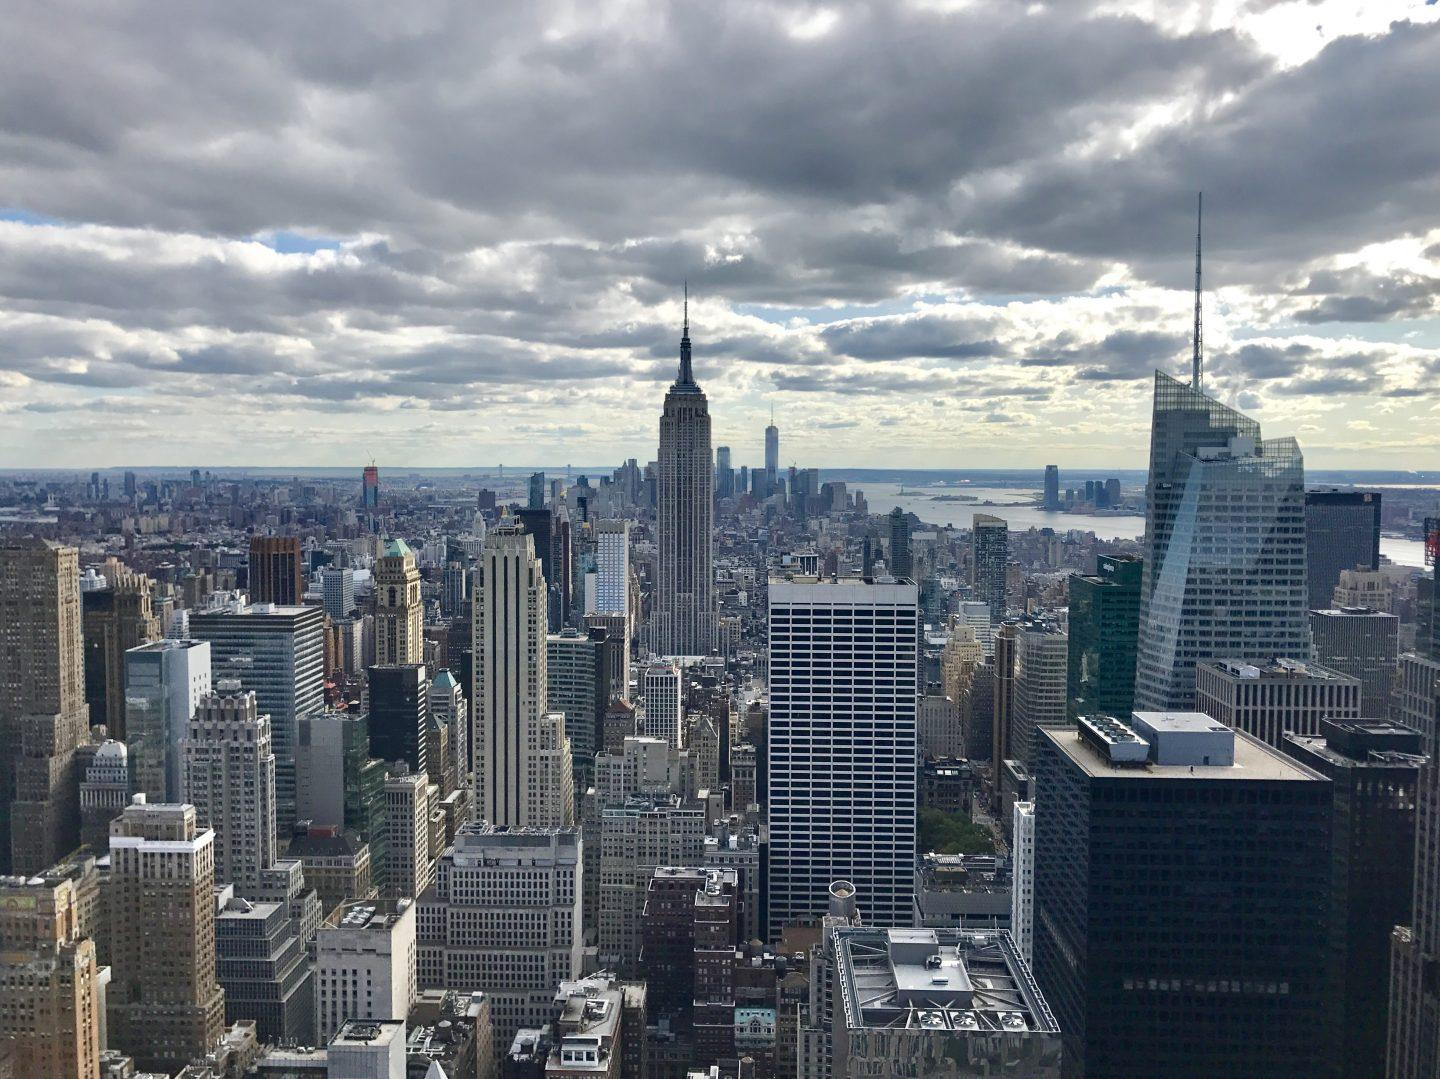 The Best Views of New York City from the Top of the Rock at Rockefeller Center